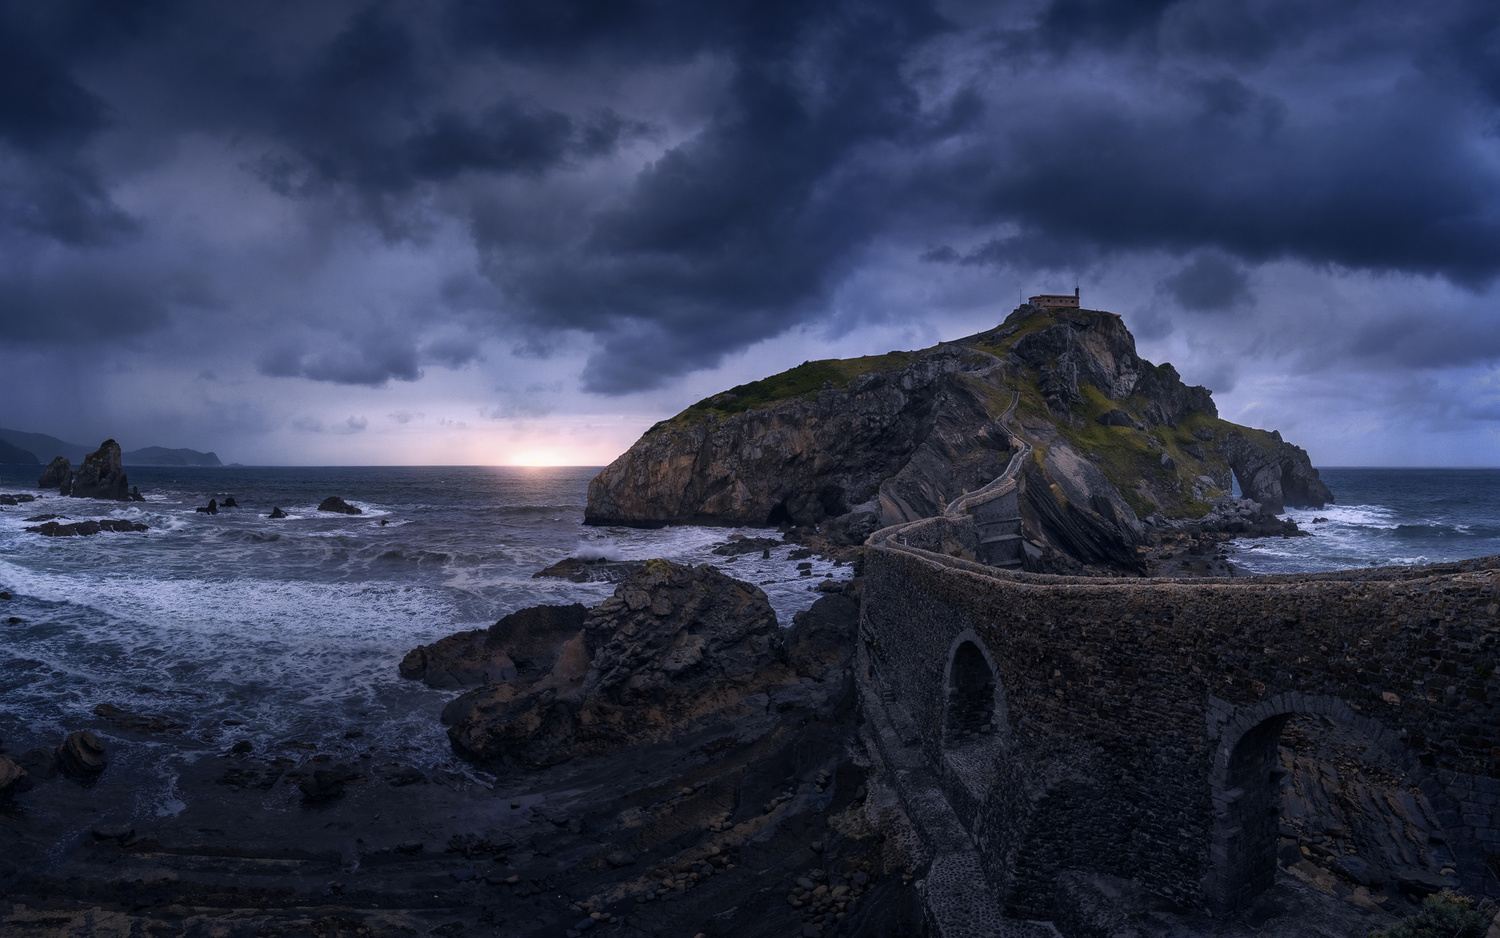 Dragonstone by jabi sanz